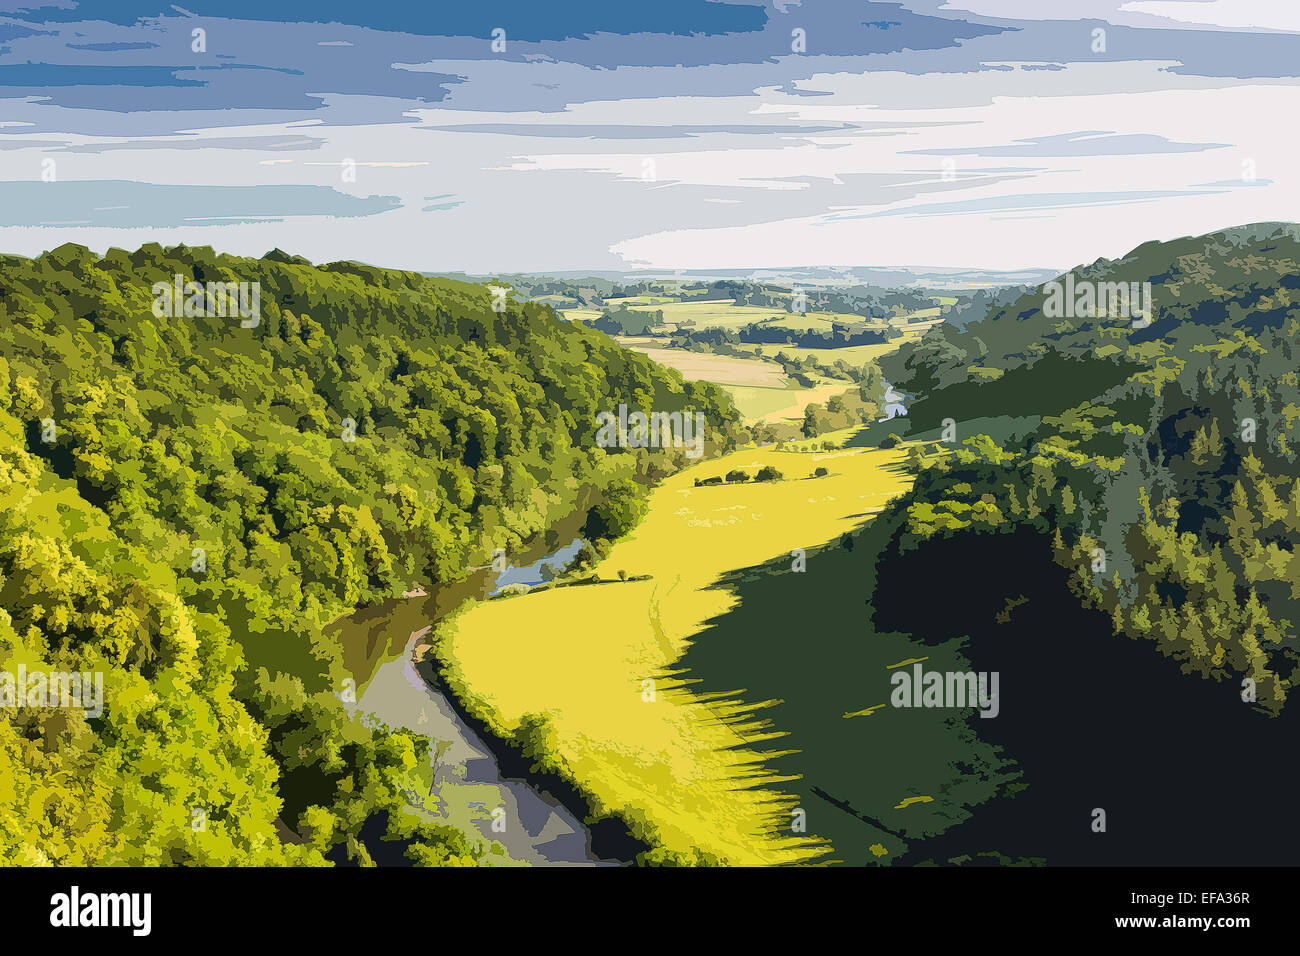 An poster style illustration of the Wye valley from Symonds Yat Rock, Herefordshire, England, UK - Stock Image